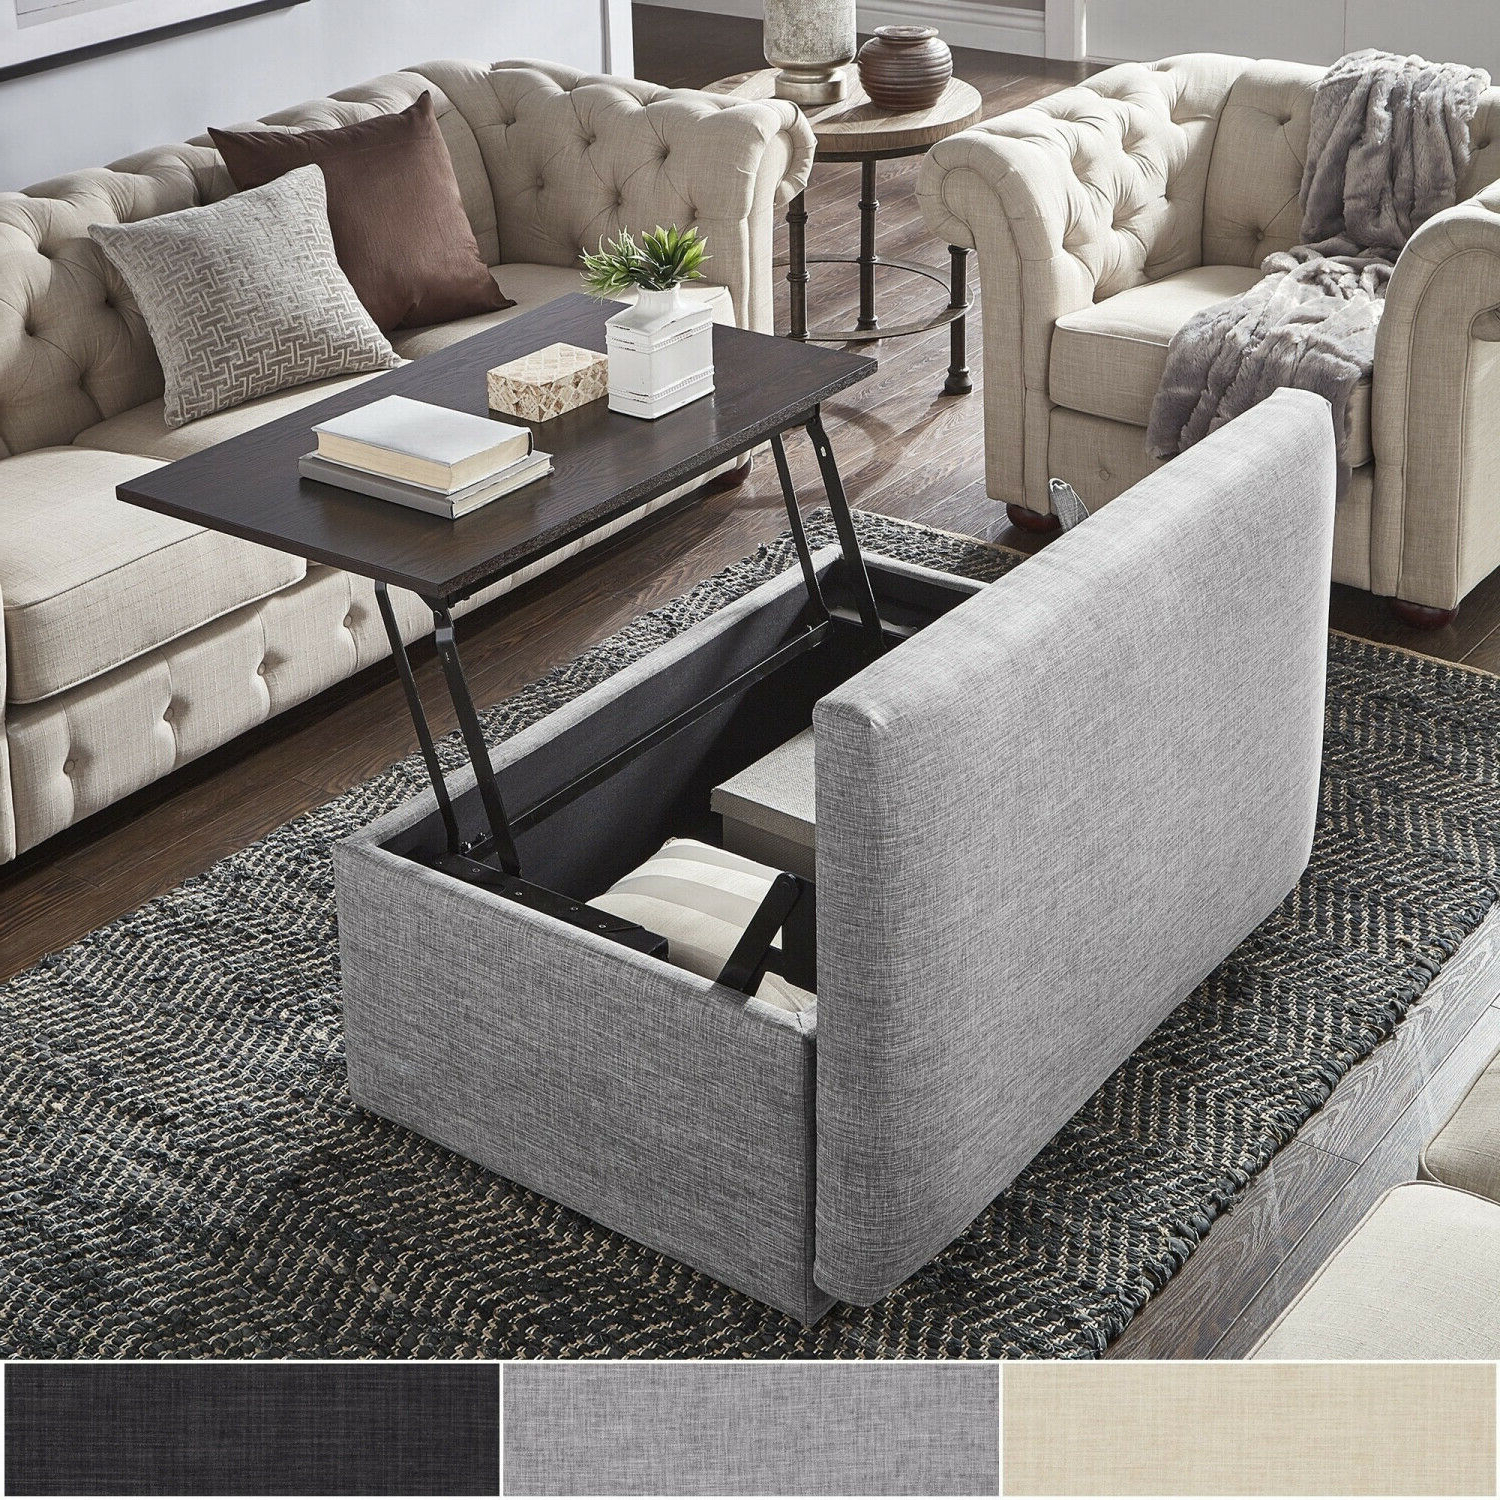 Landen Lift Top Upholstered Storage Ottoman Coffee Tableinspire Q Artisan Throughout Well Liked Lennon Pine Square Storage Ottoman Coffee Tables (View 14 of 20)